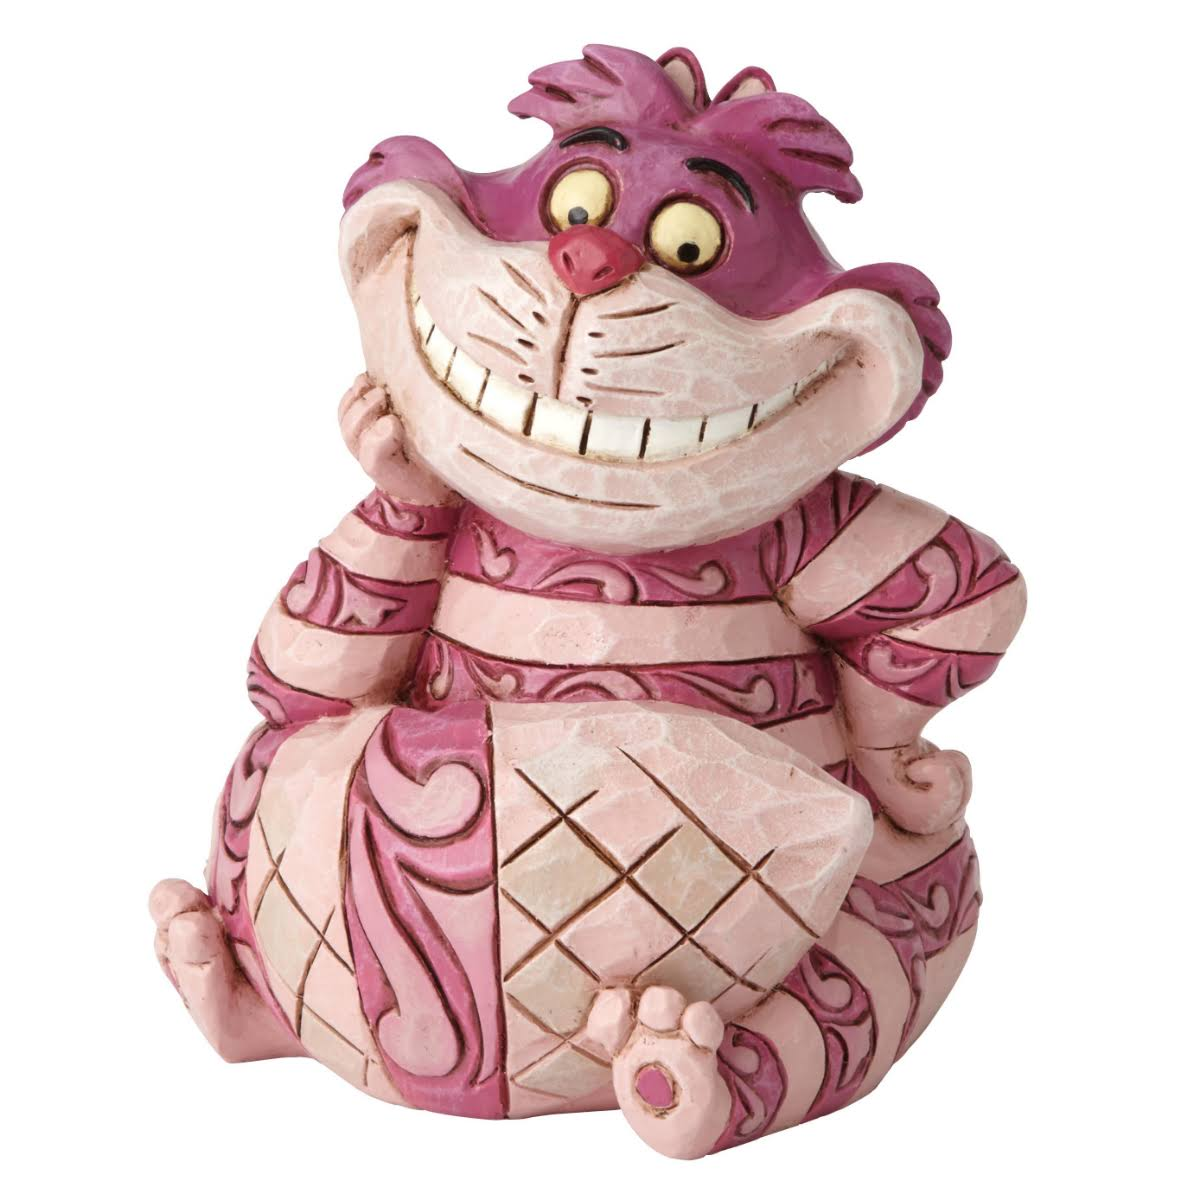 Disney Cheshire Cat Mini Figurine